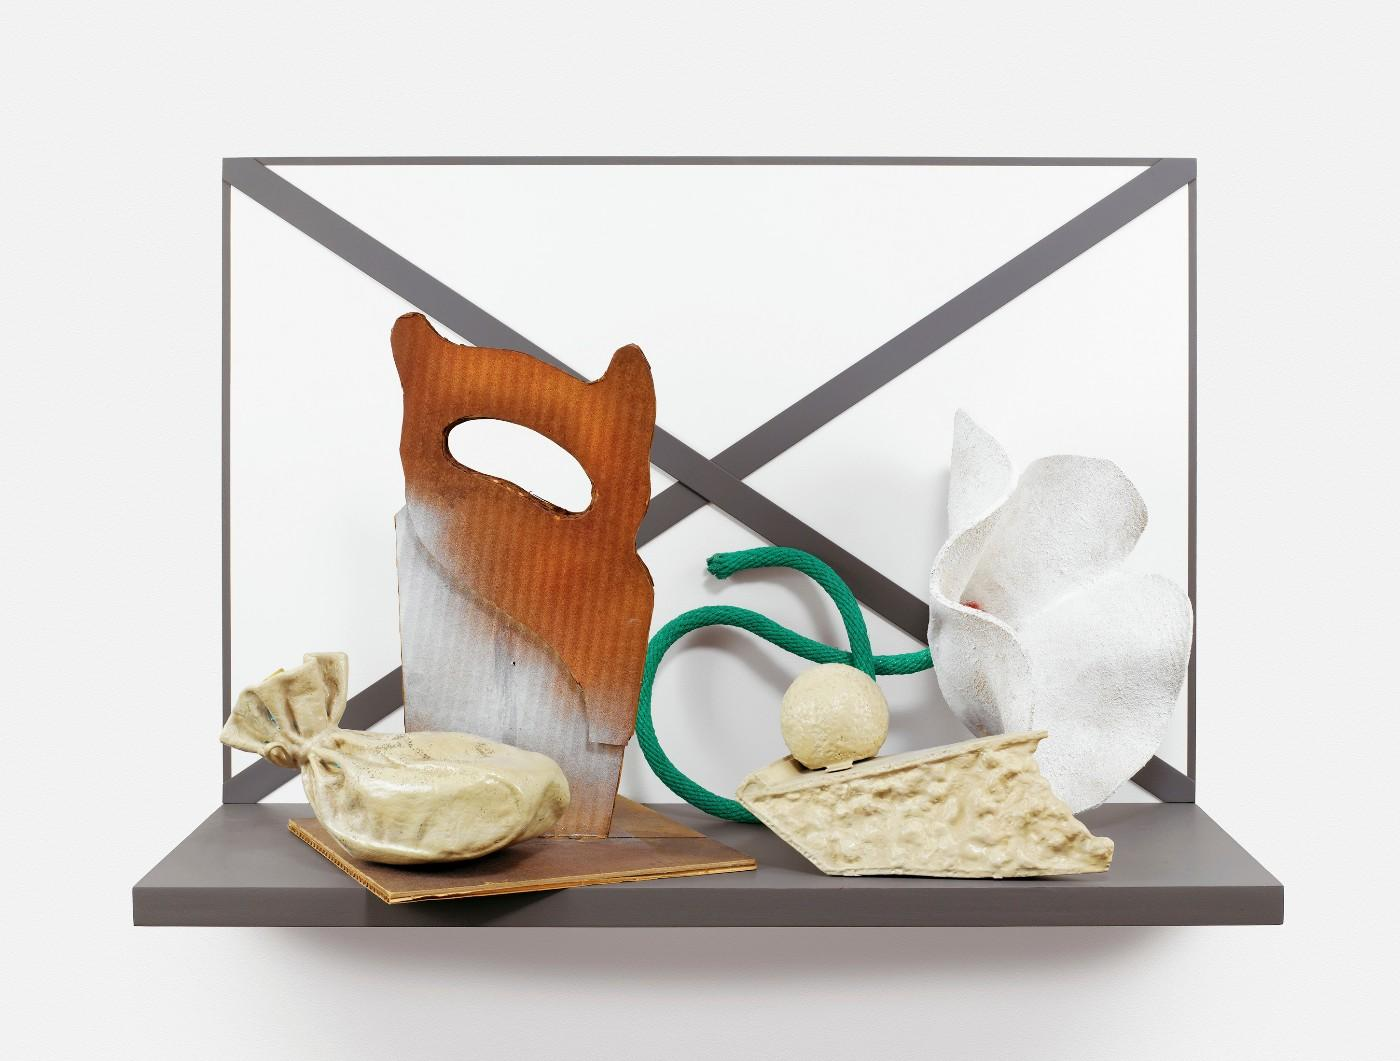 Claes Oldenburg (American (born in Sweden, 1929)), Shelf Life Number 13, 2016-2017